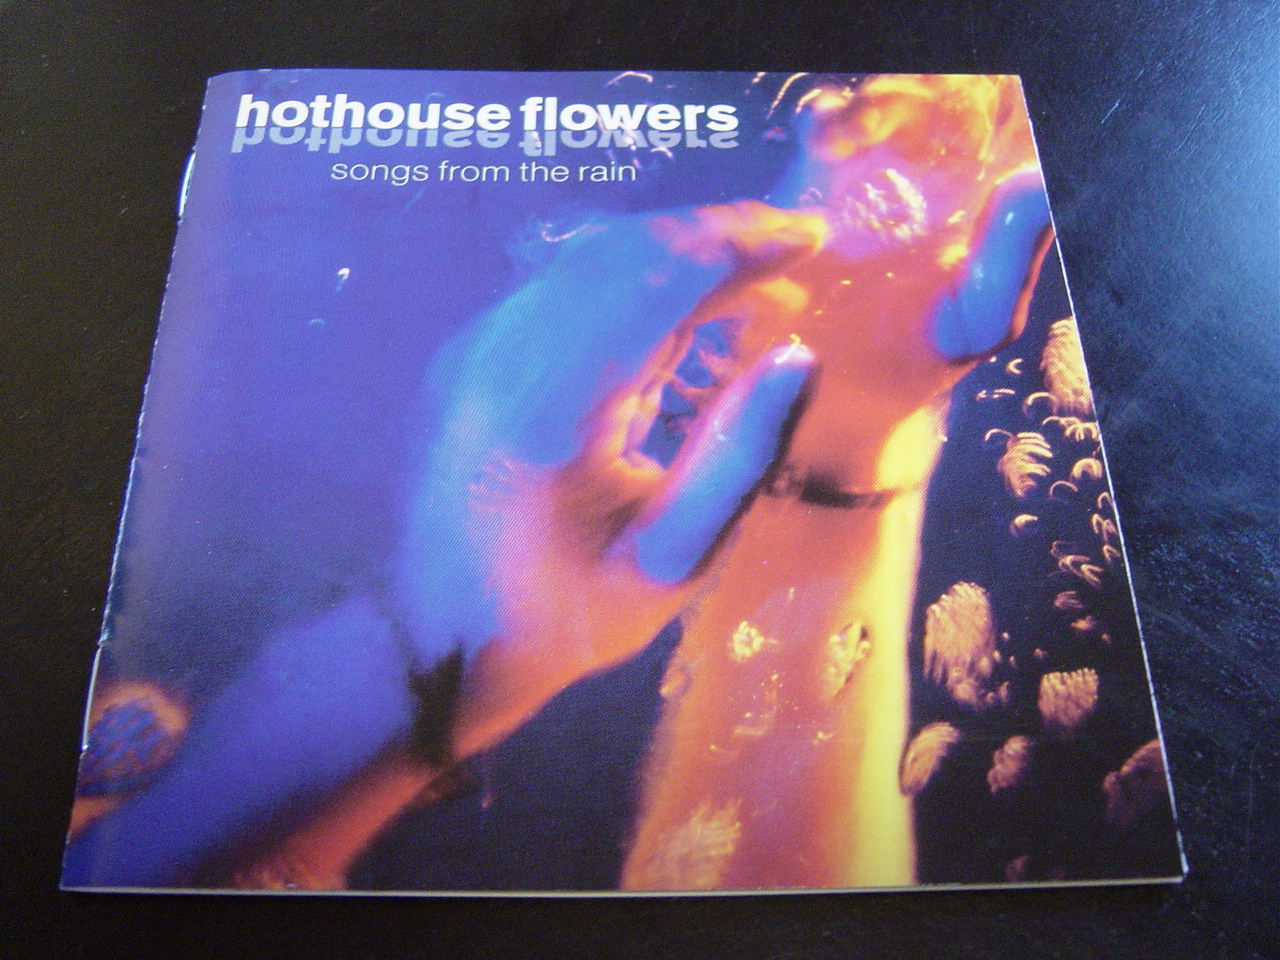 Hothouse_flowers_1